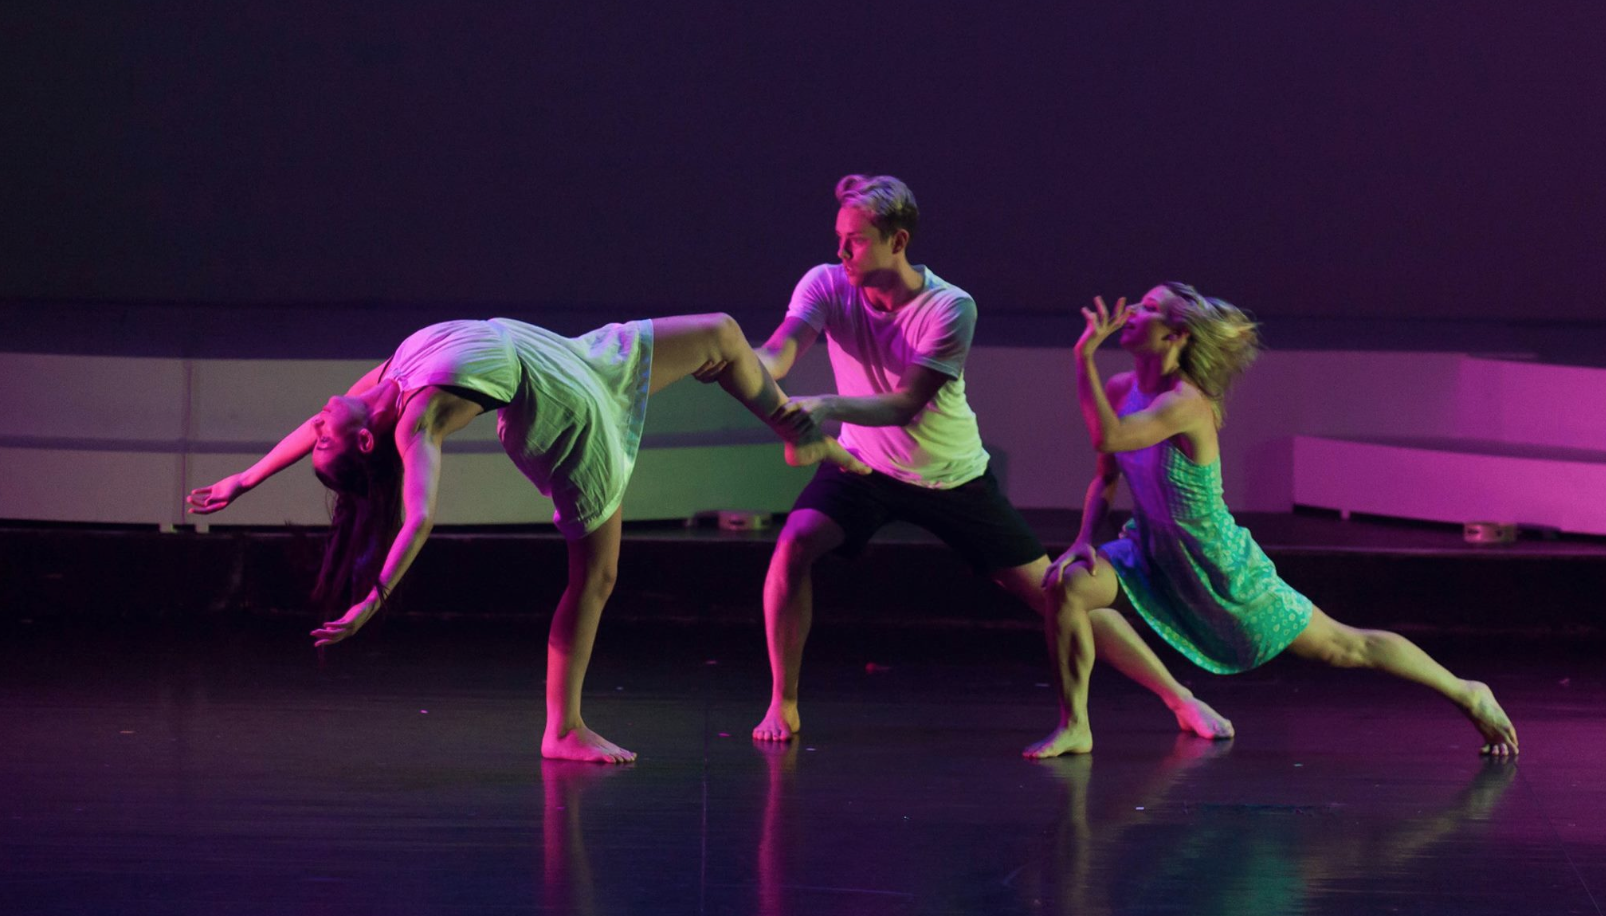 miranda_zeller_and_anthony_trojman_dancers_contemporary_brisbane